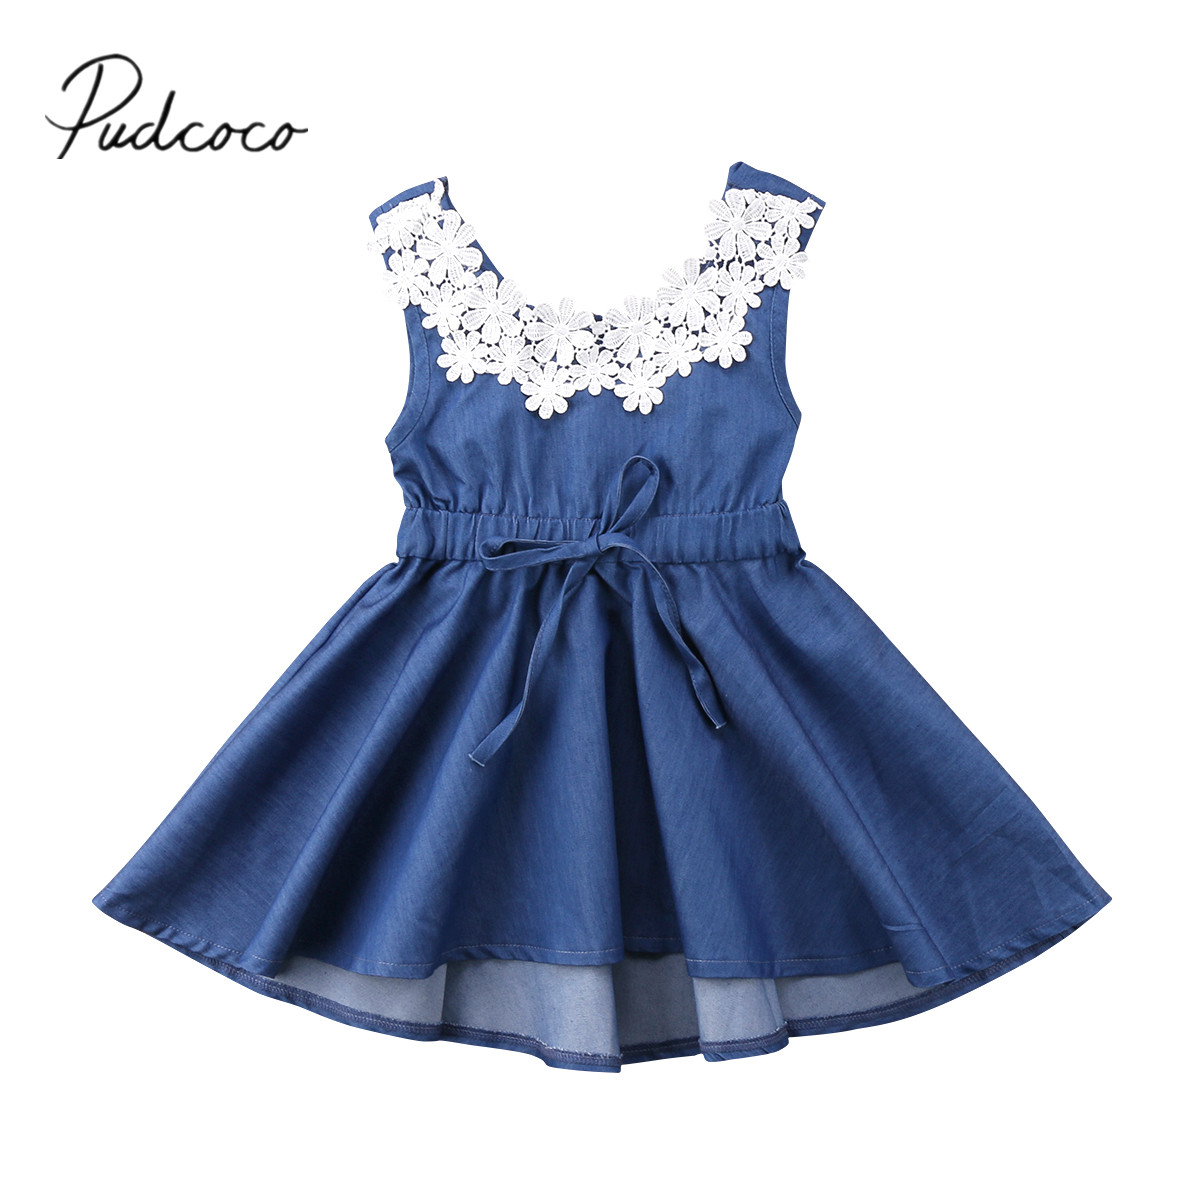 2018 Brand New Toddler Infant Child Kids Princess Baby Girls Summer Lace Floral Denim Party Dress Cute Sleeveless Sundress 1-6T baby girls infant wedding party bowknot sleeveless ruffled vest dress sundress